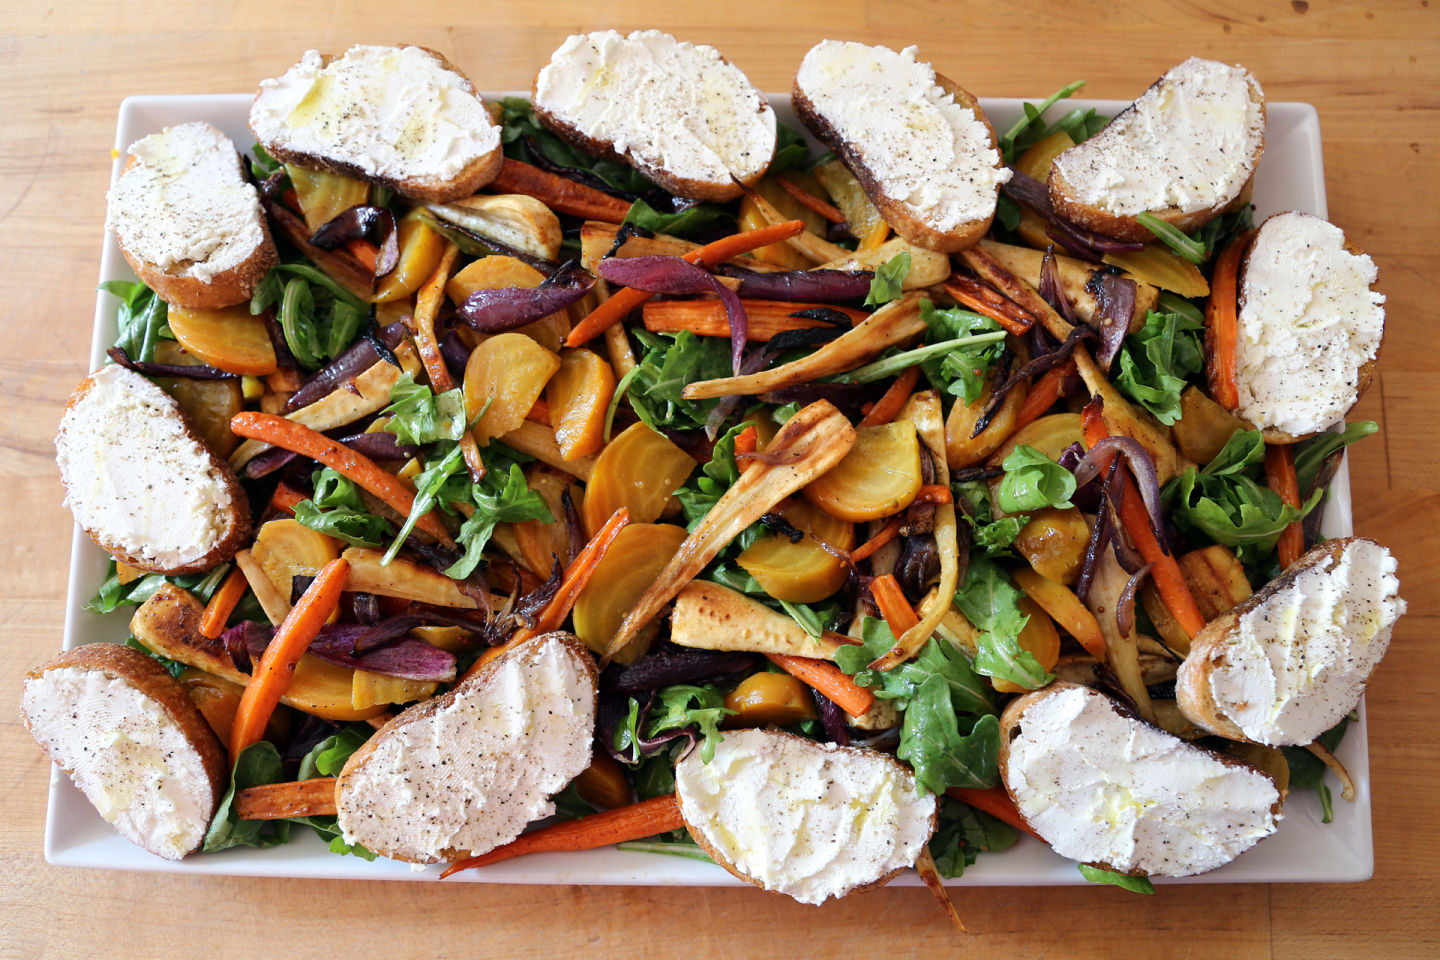 Autumn Root Vegetable Salad with Goat Cheese Crostini Wendy Goodfriend